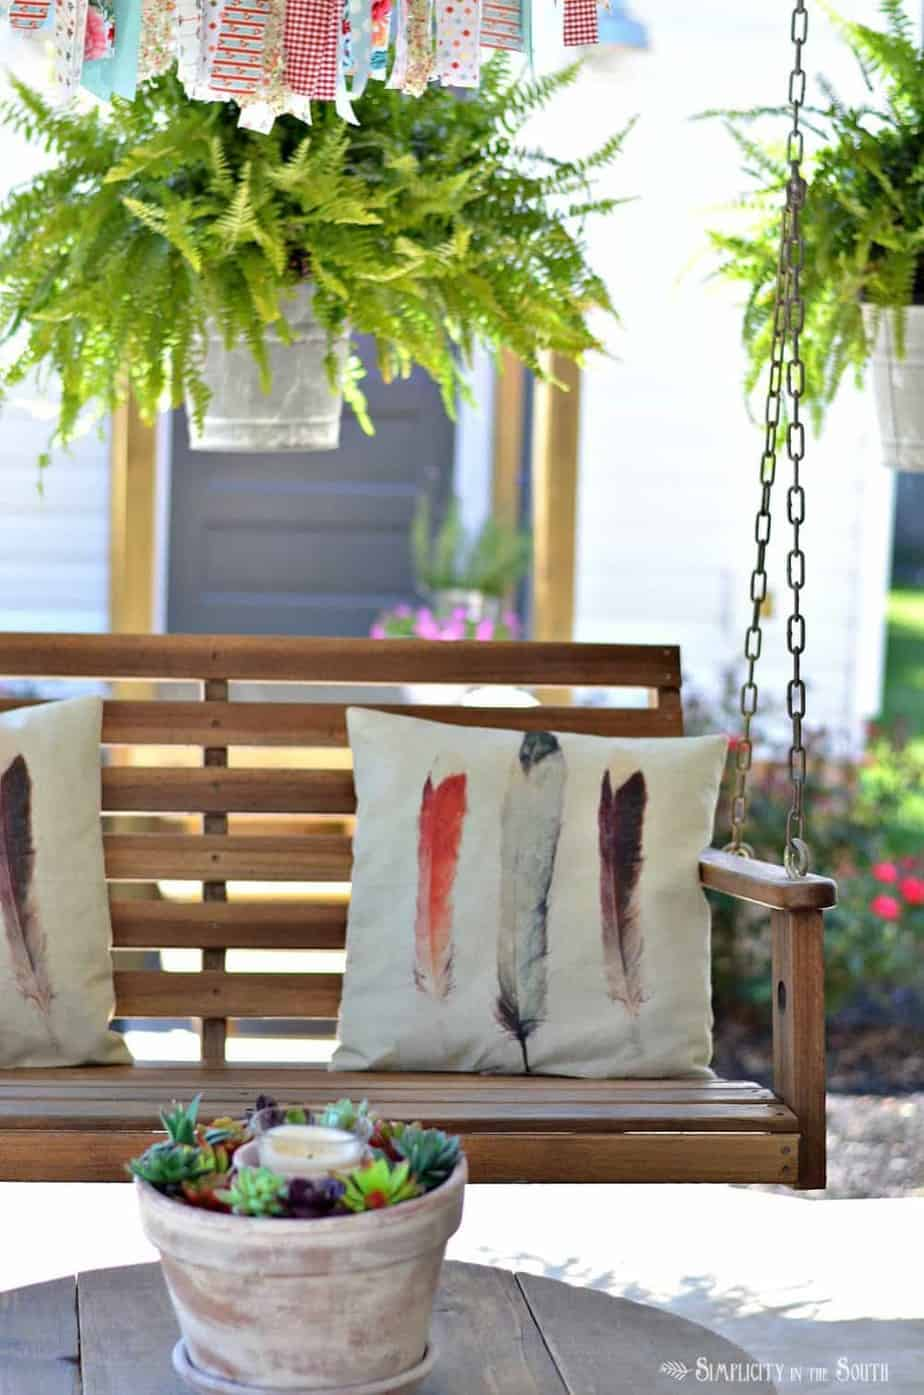 Front porch swing and hanging ferns